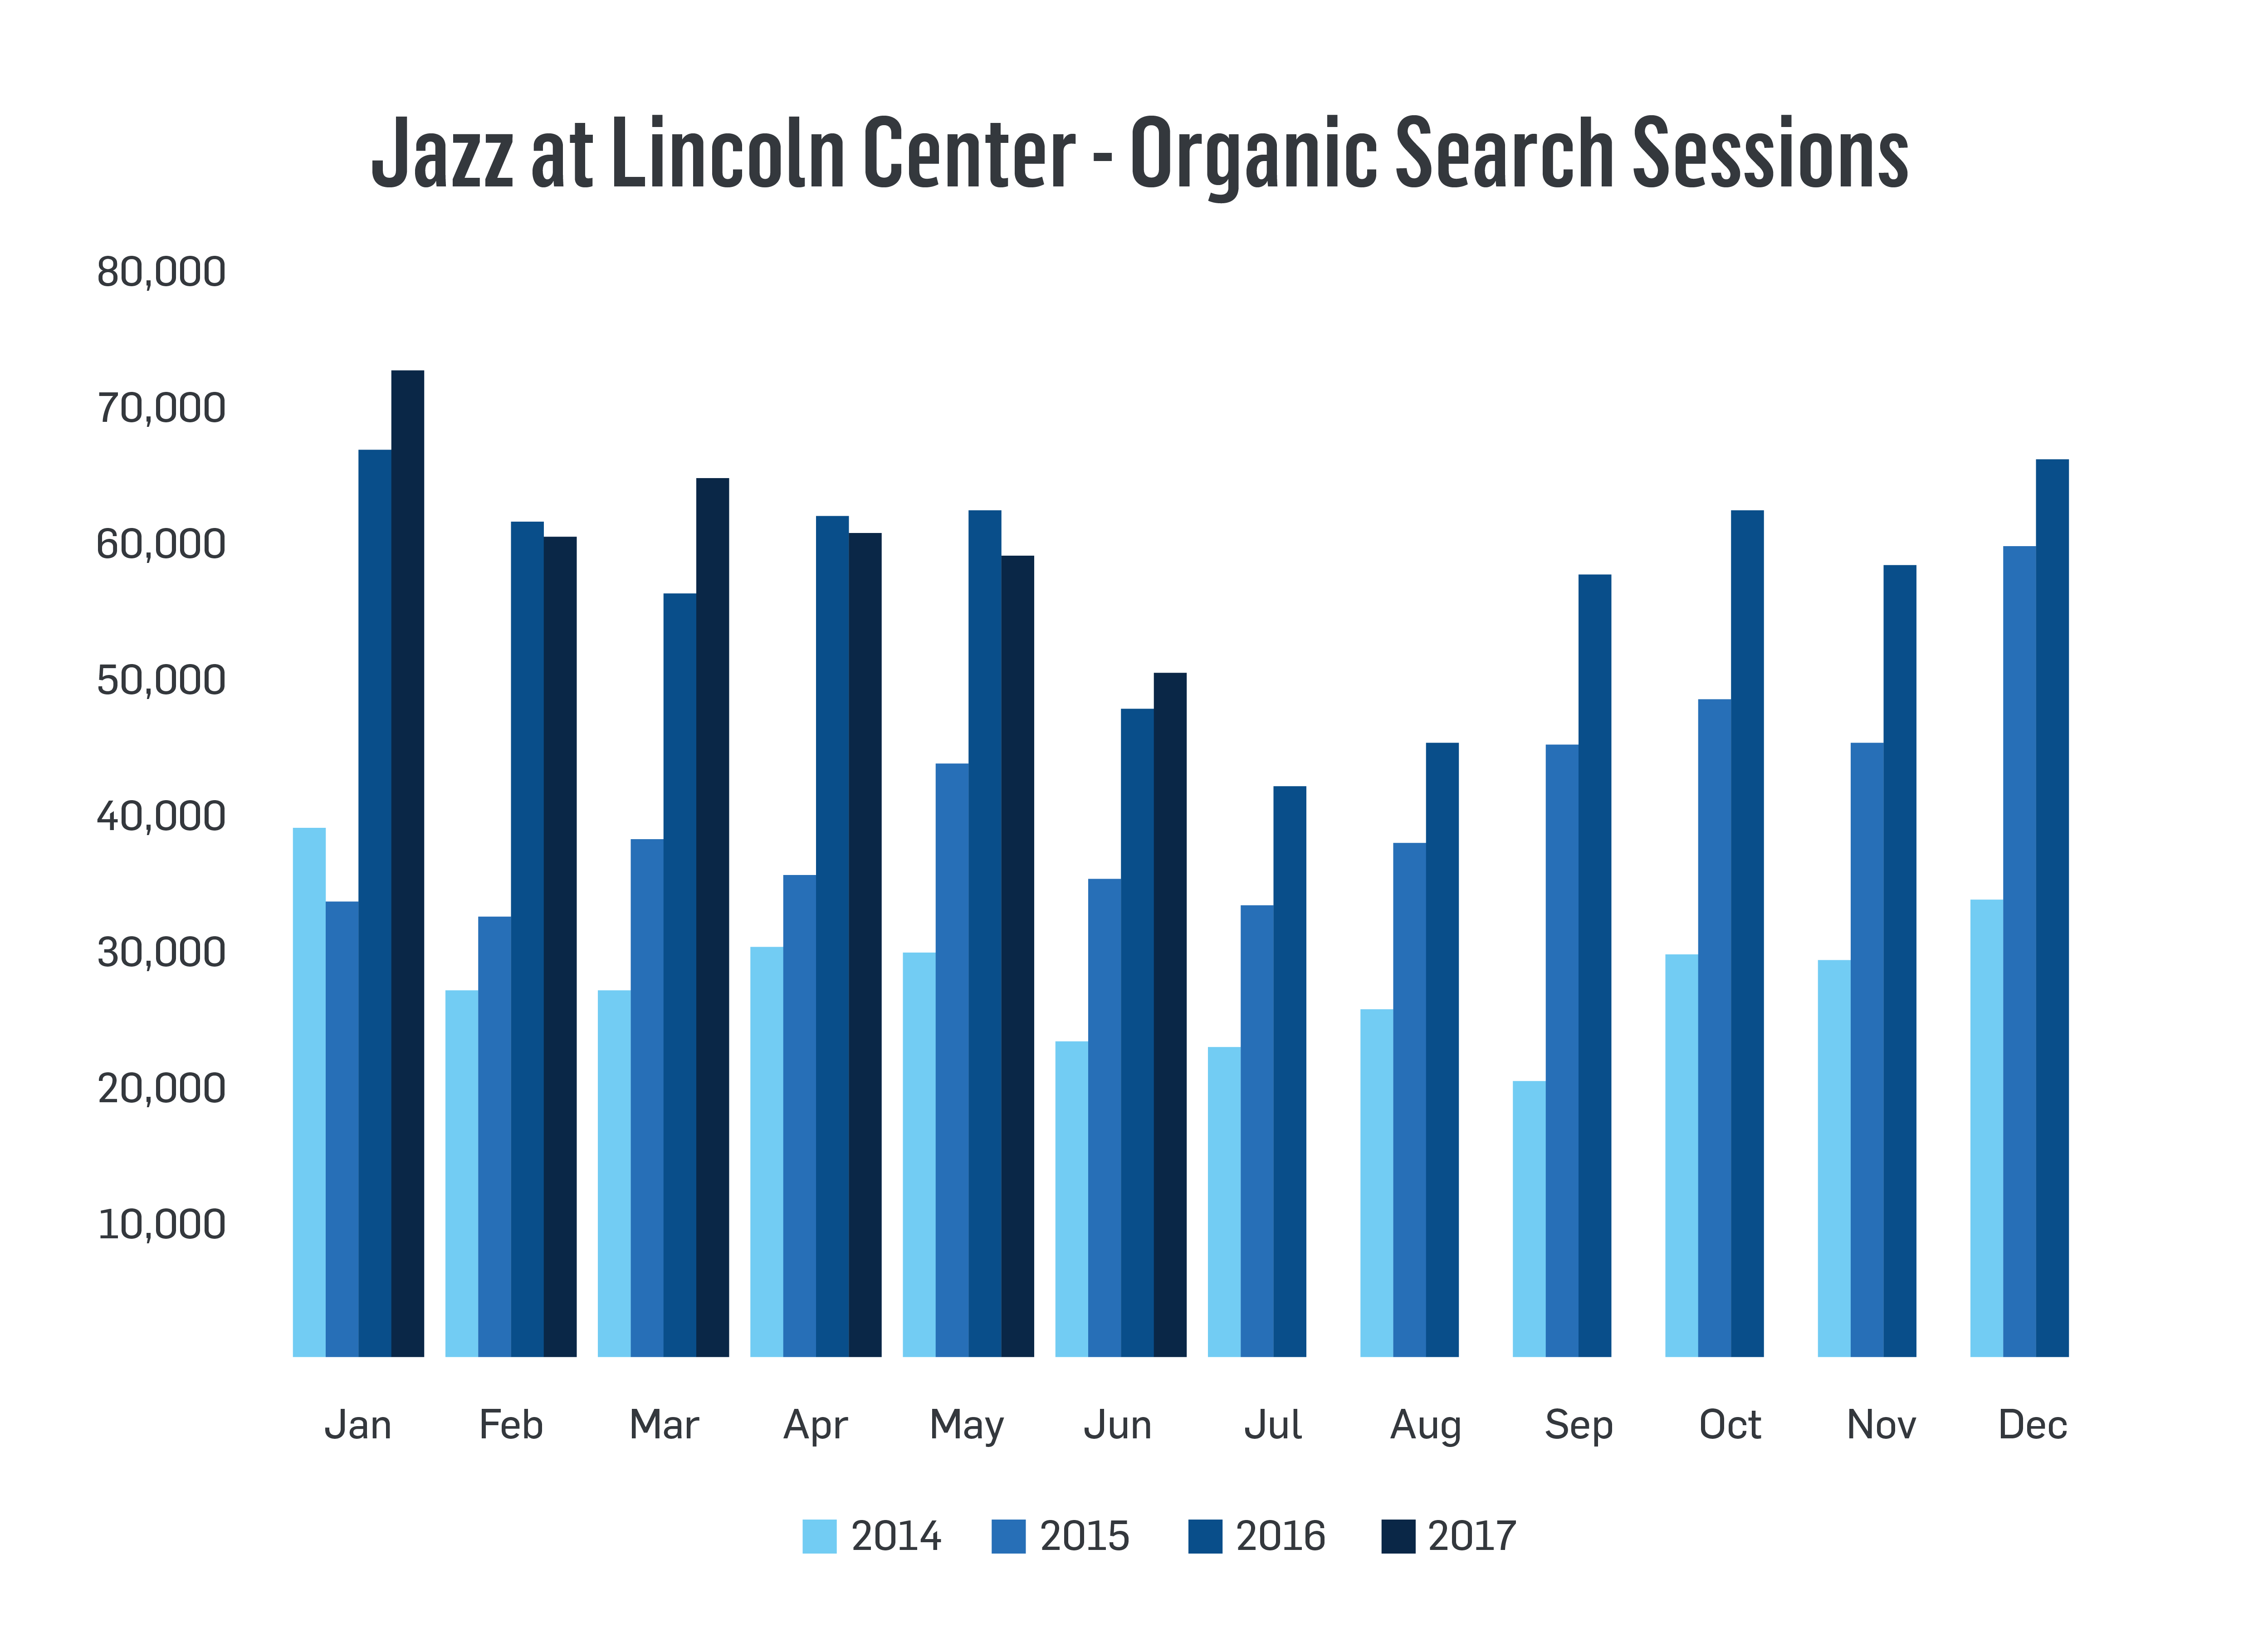 Jazz at Lincoln Center Organic Search Sessions Bar Graph